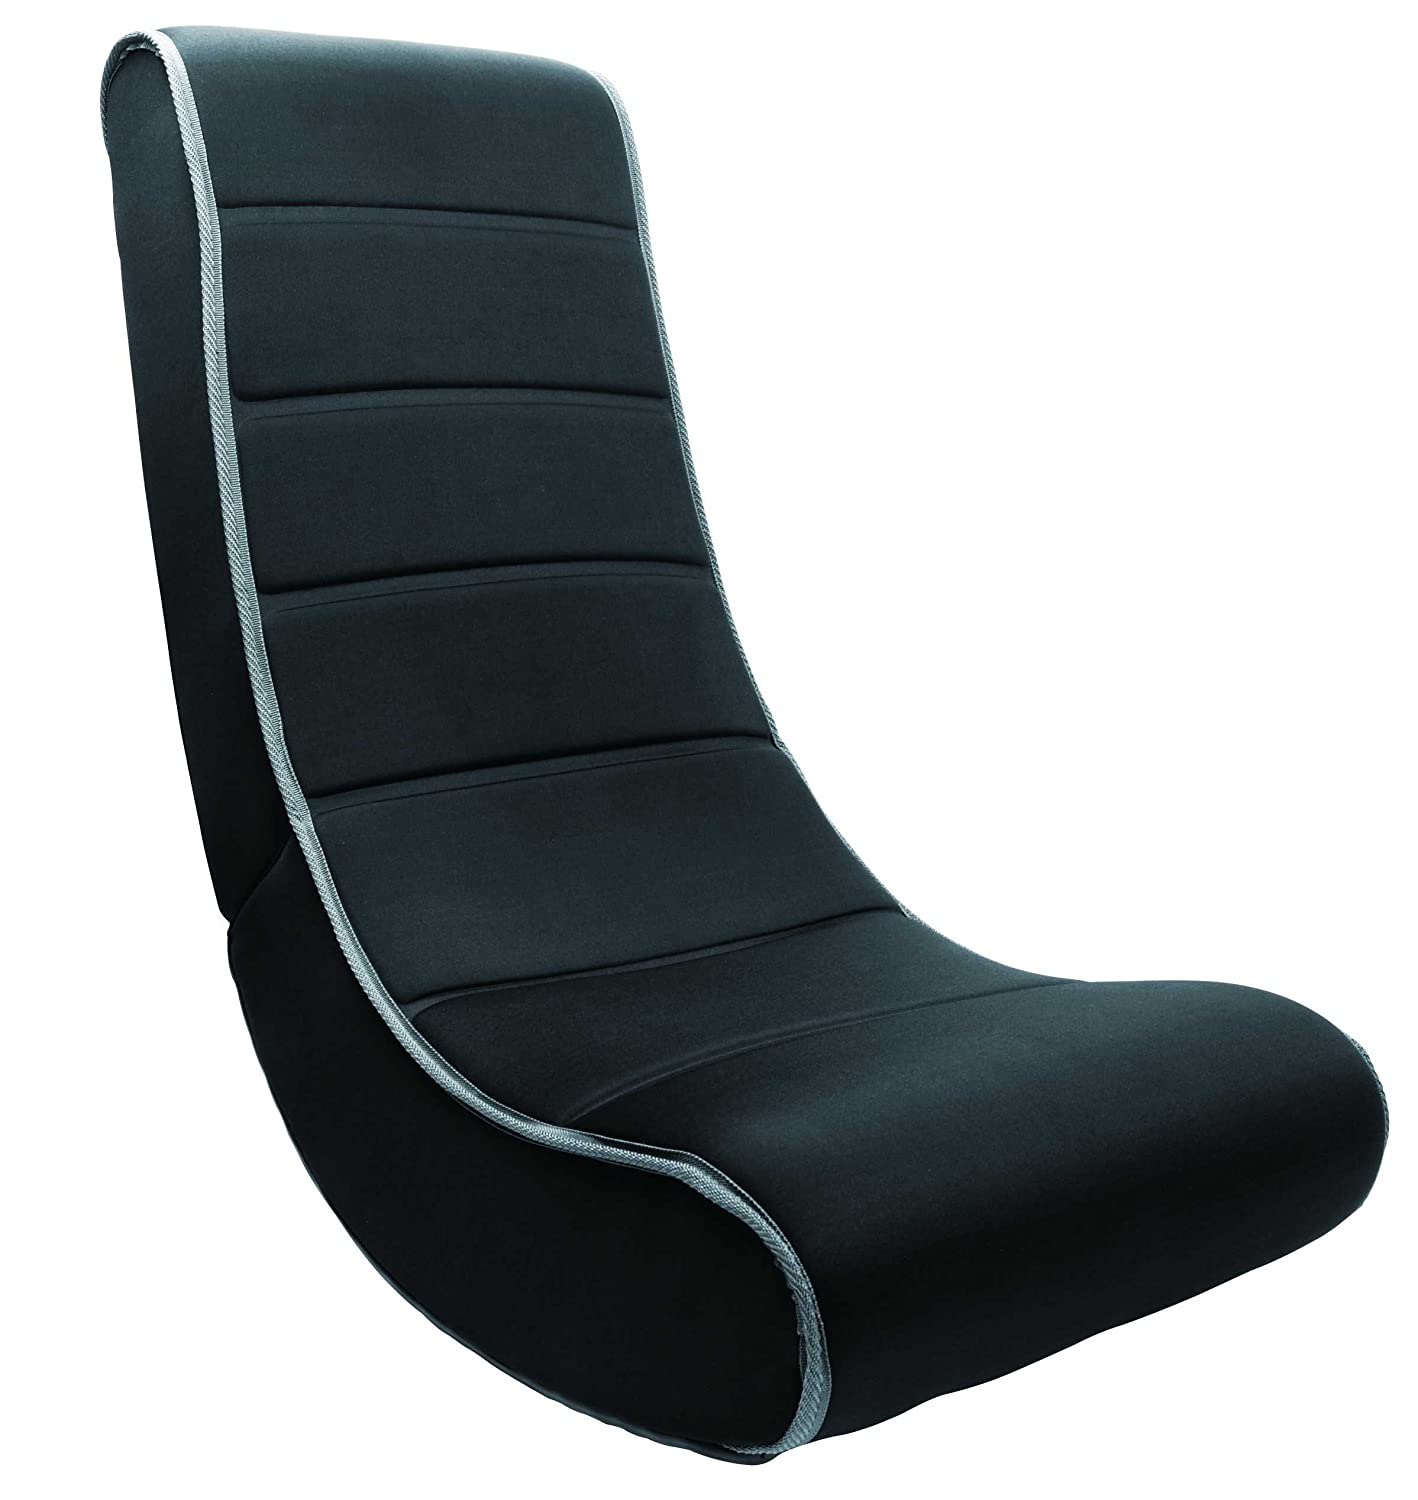 sc 1 st  Amazon.com & Amazon.com: Cohesion XP Folding Gaming Chair: Home u0026 Kitchen